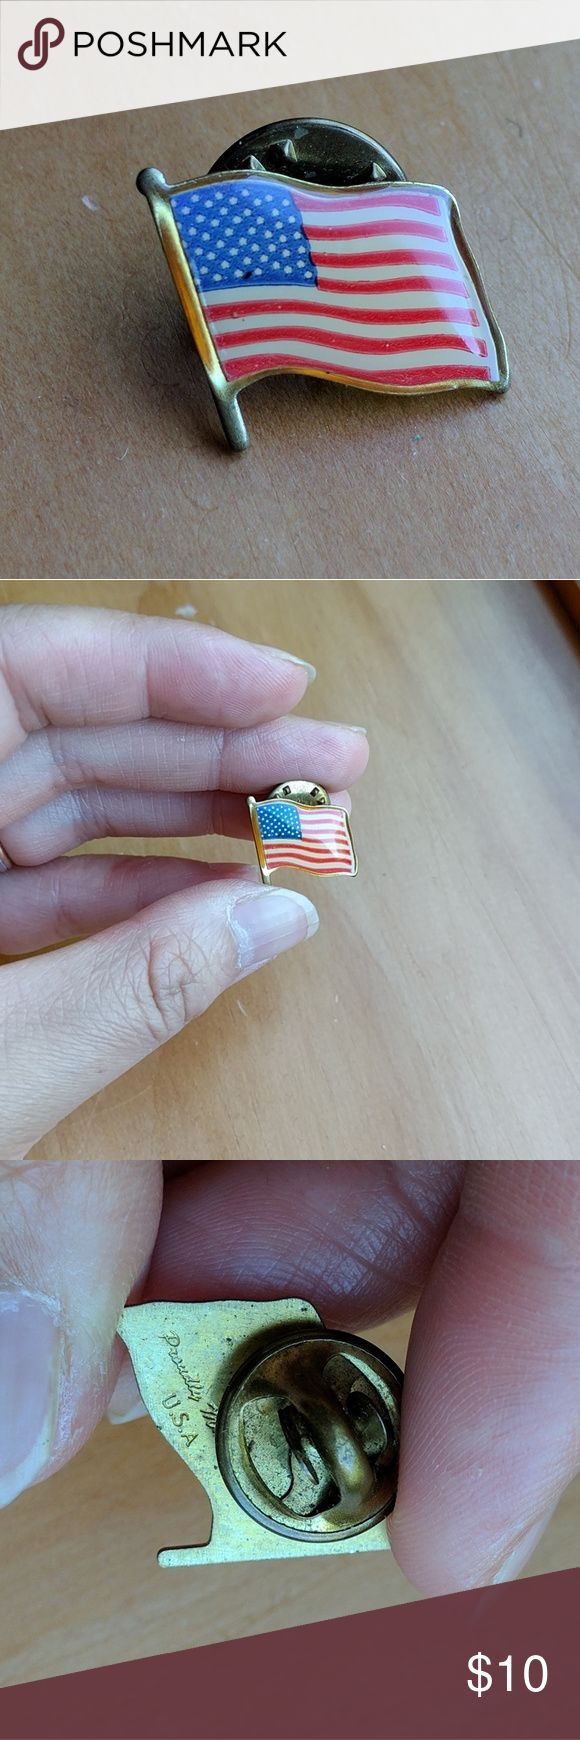 Vintage American flag pin free with $30+ order A vintage American flag pin.  Only one, free with any order $30 (not including the pin) or more between now and July 4th, 2017.  Add it to the bundle and offer less the $10 of the pin.  Made in USA. Vintage Jewelry Brooches